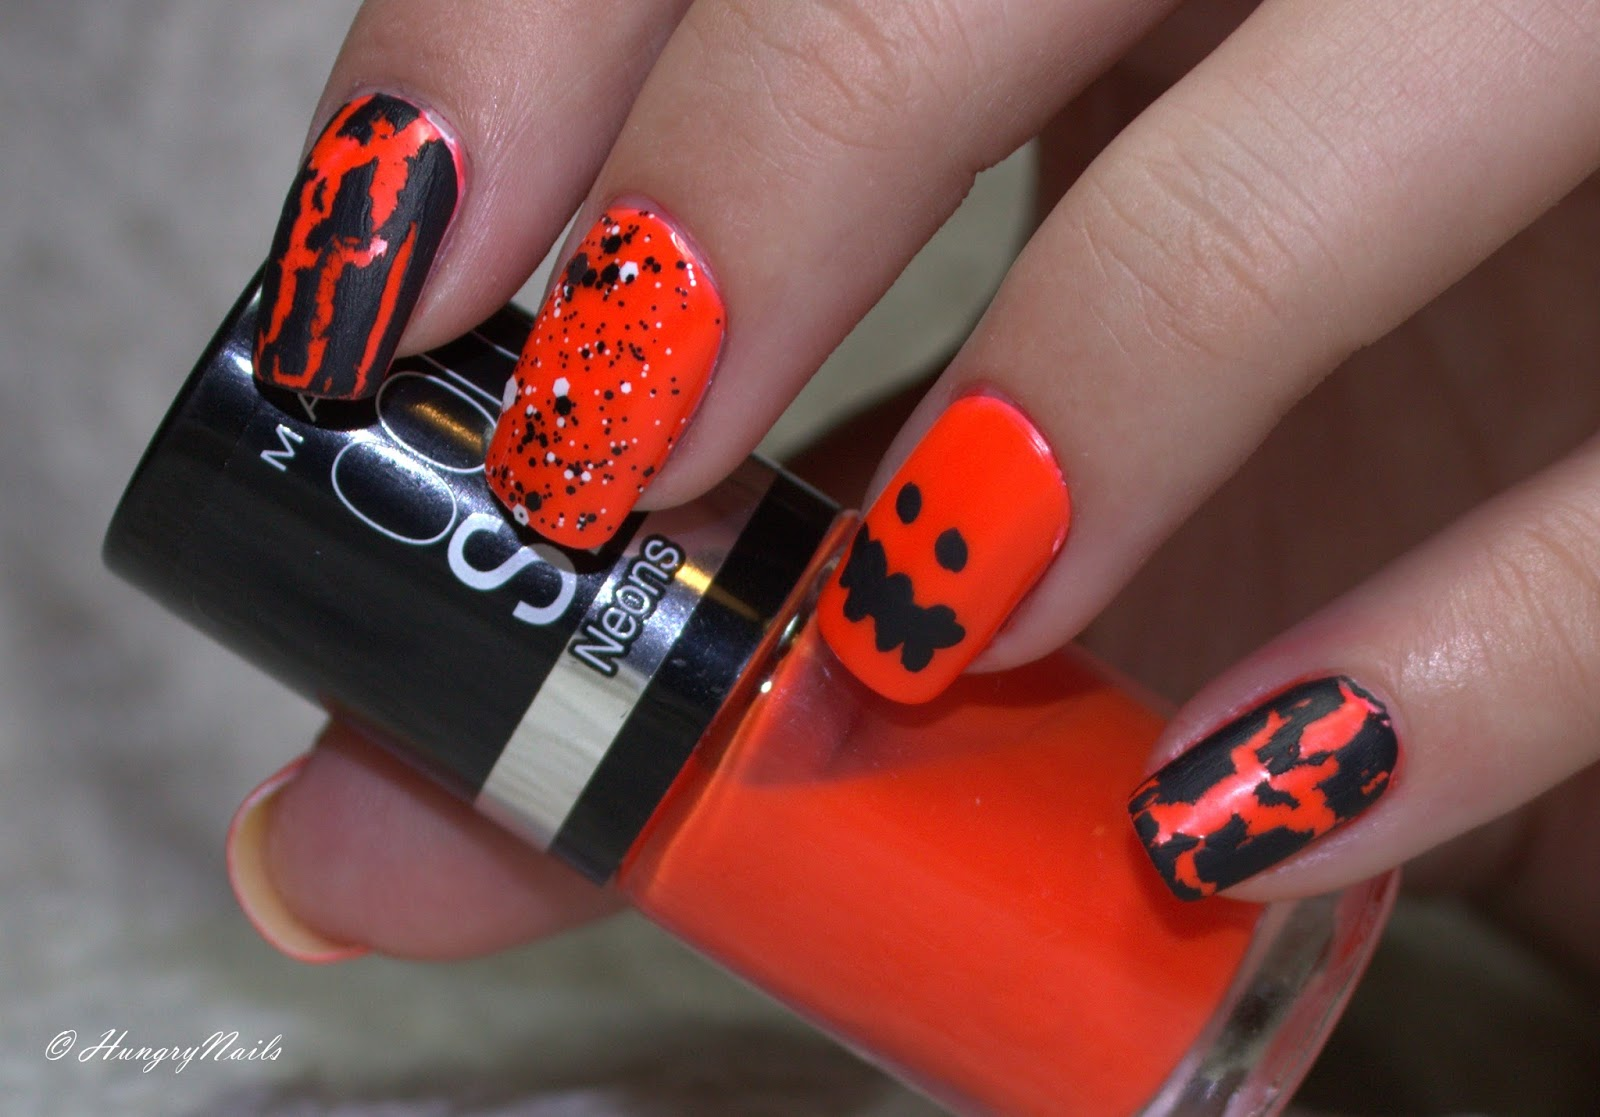 http://hungrynails.blogspot.de/2014/10/lacke-in-farbe-und-bunt-orange.html